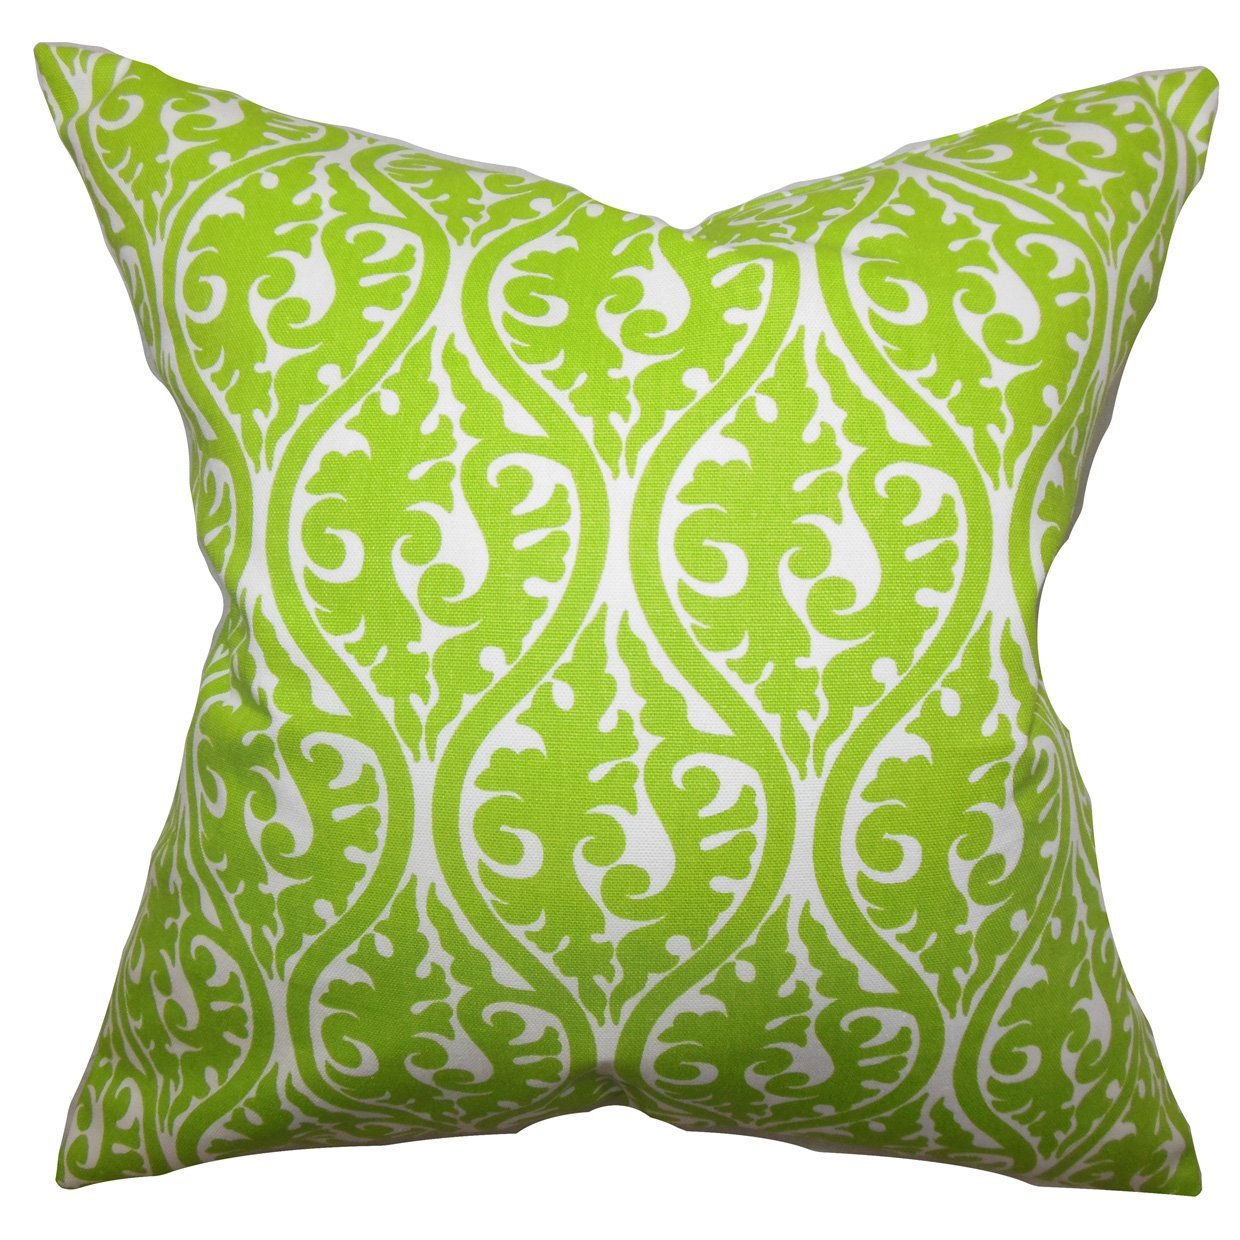 The Pillow Collection Mechria Geometric Bedding Sham Chartreuse Green European//26 x 26